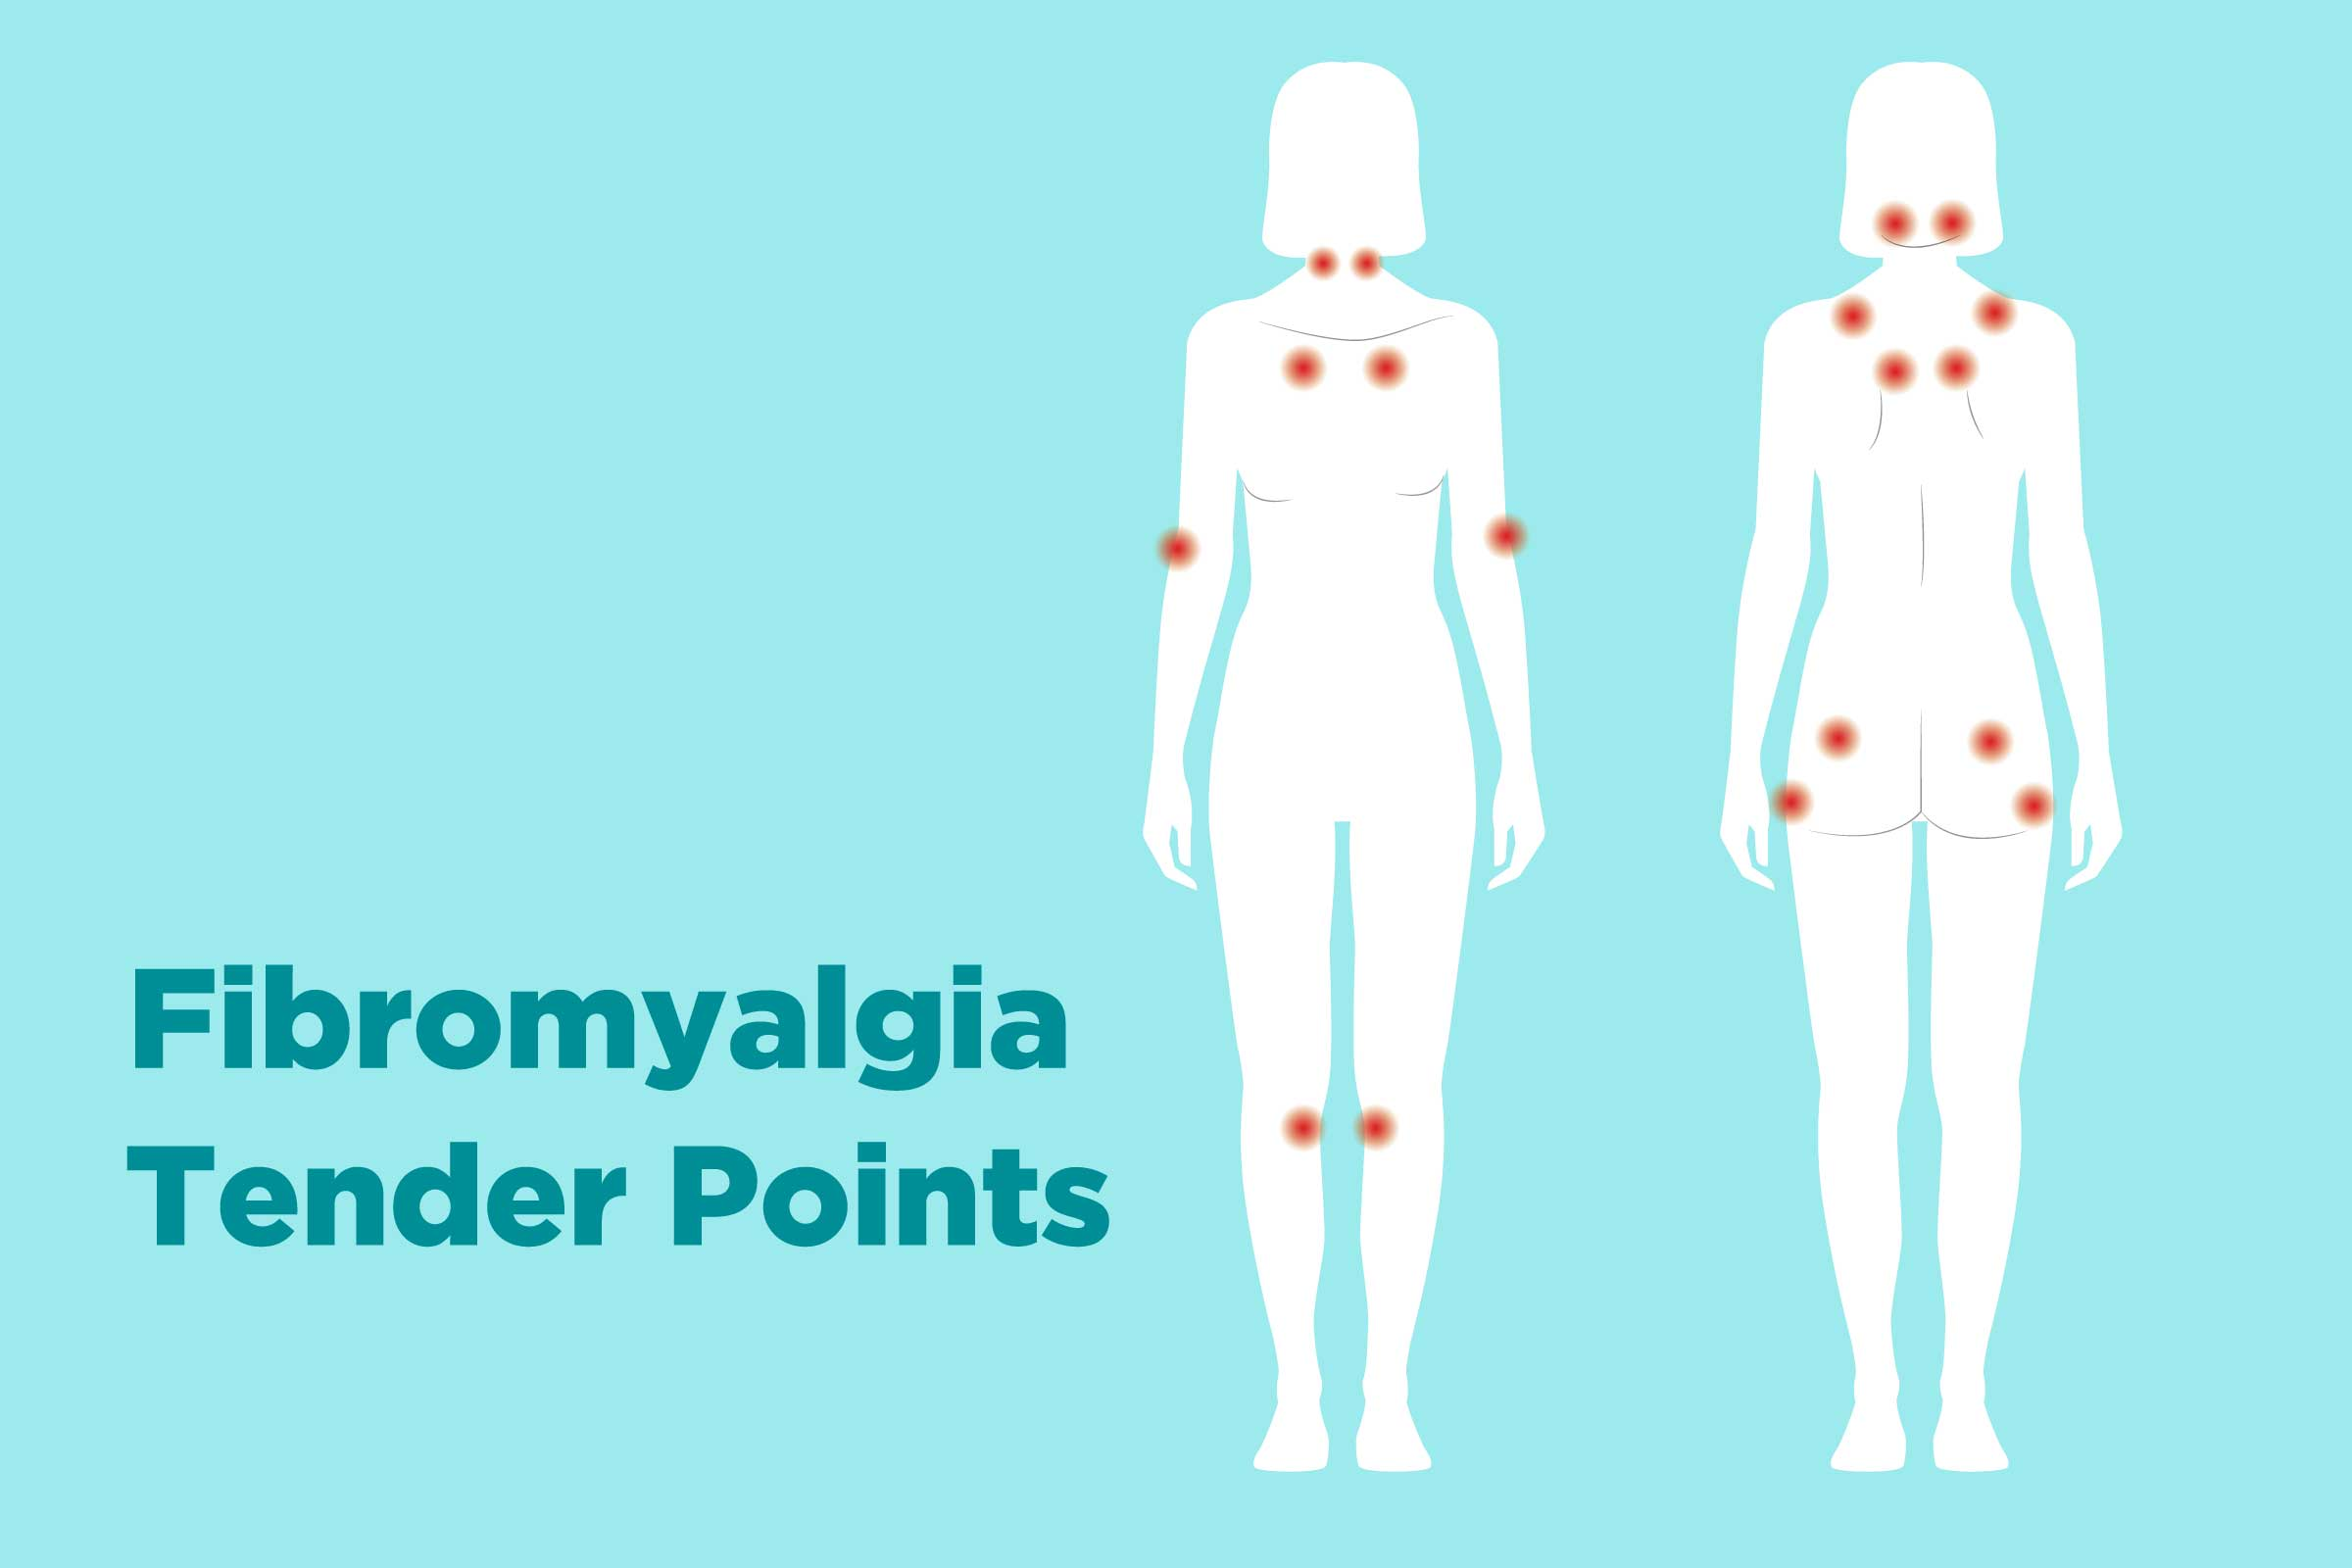 Fibromyalgia Tender Points: What and Where Are They?